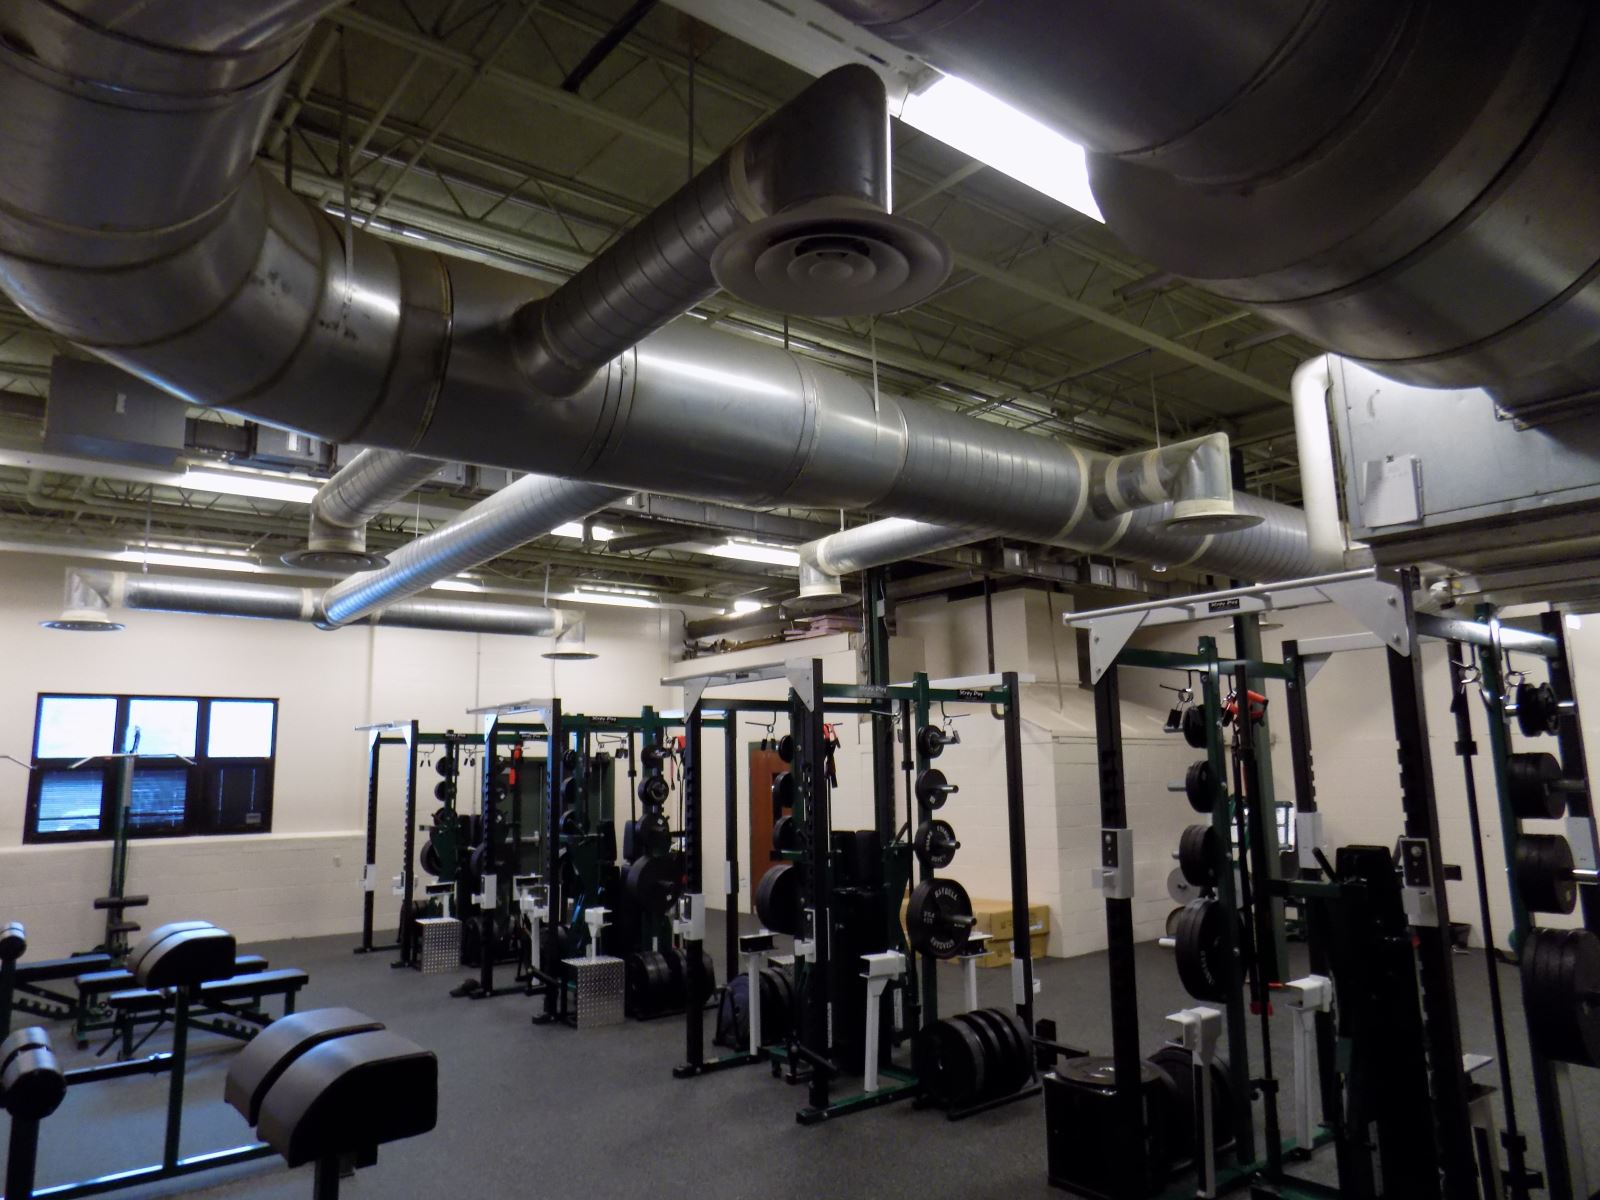 New weight and fitness rooms northridge local schools